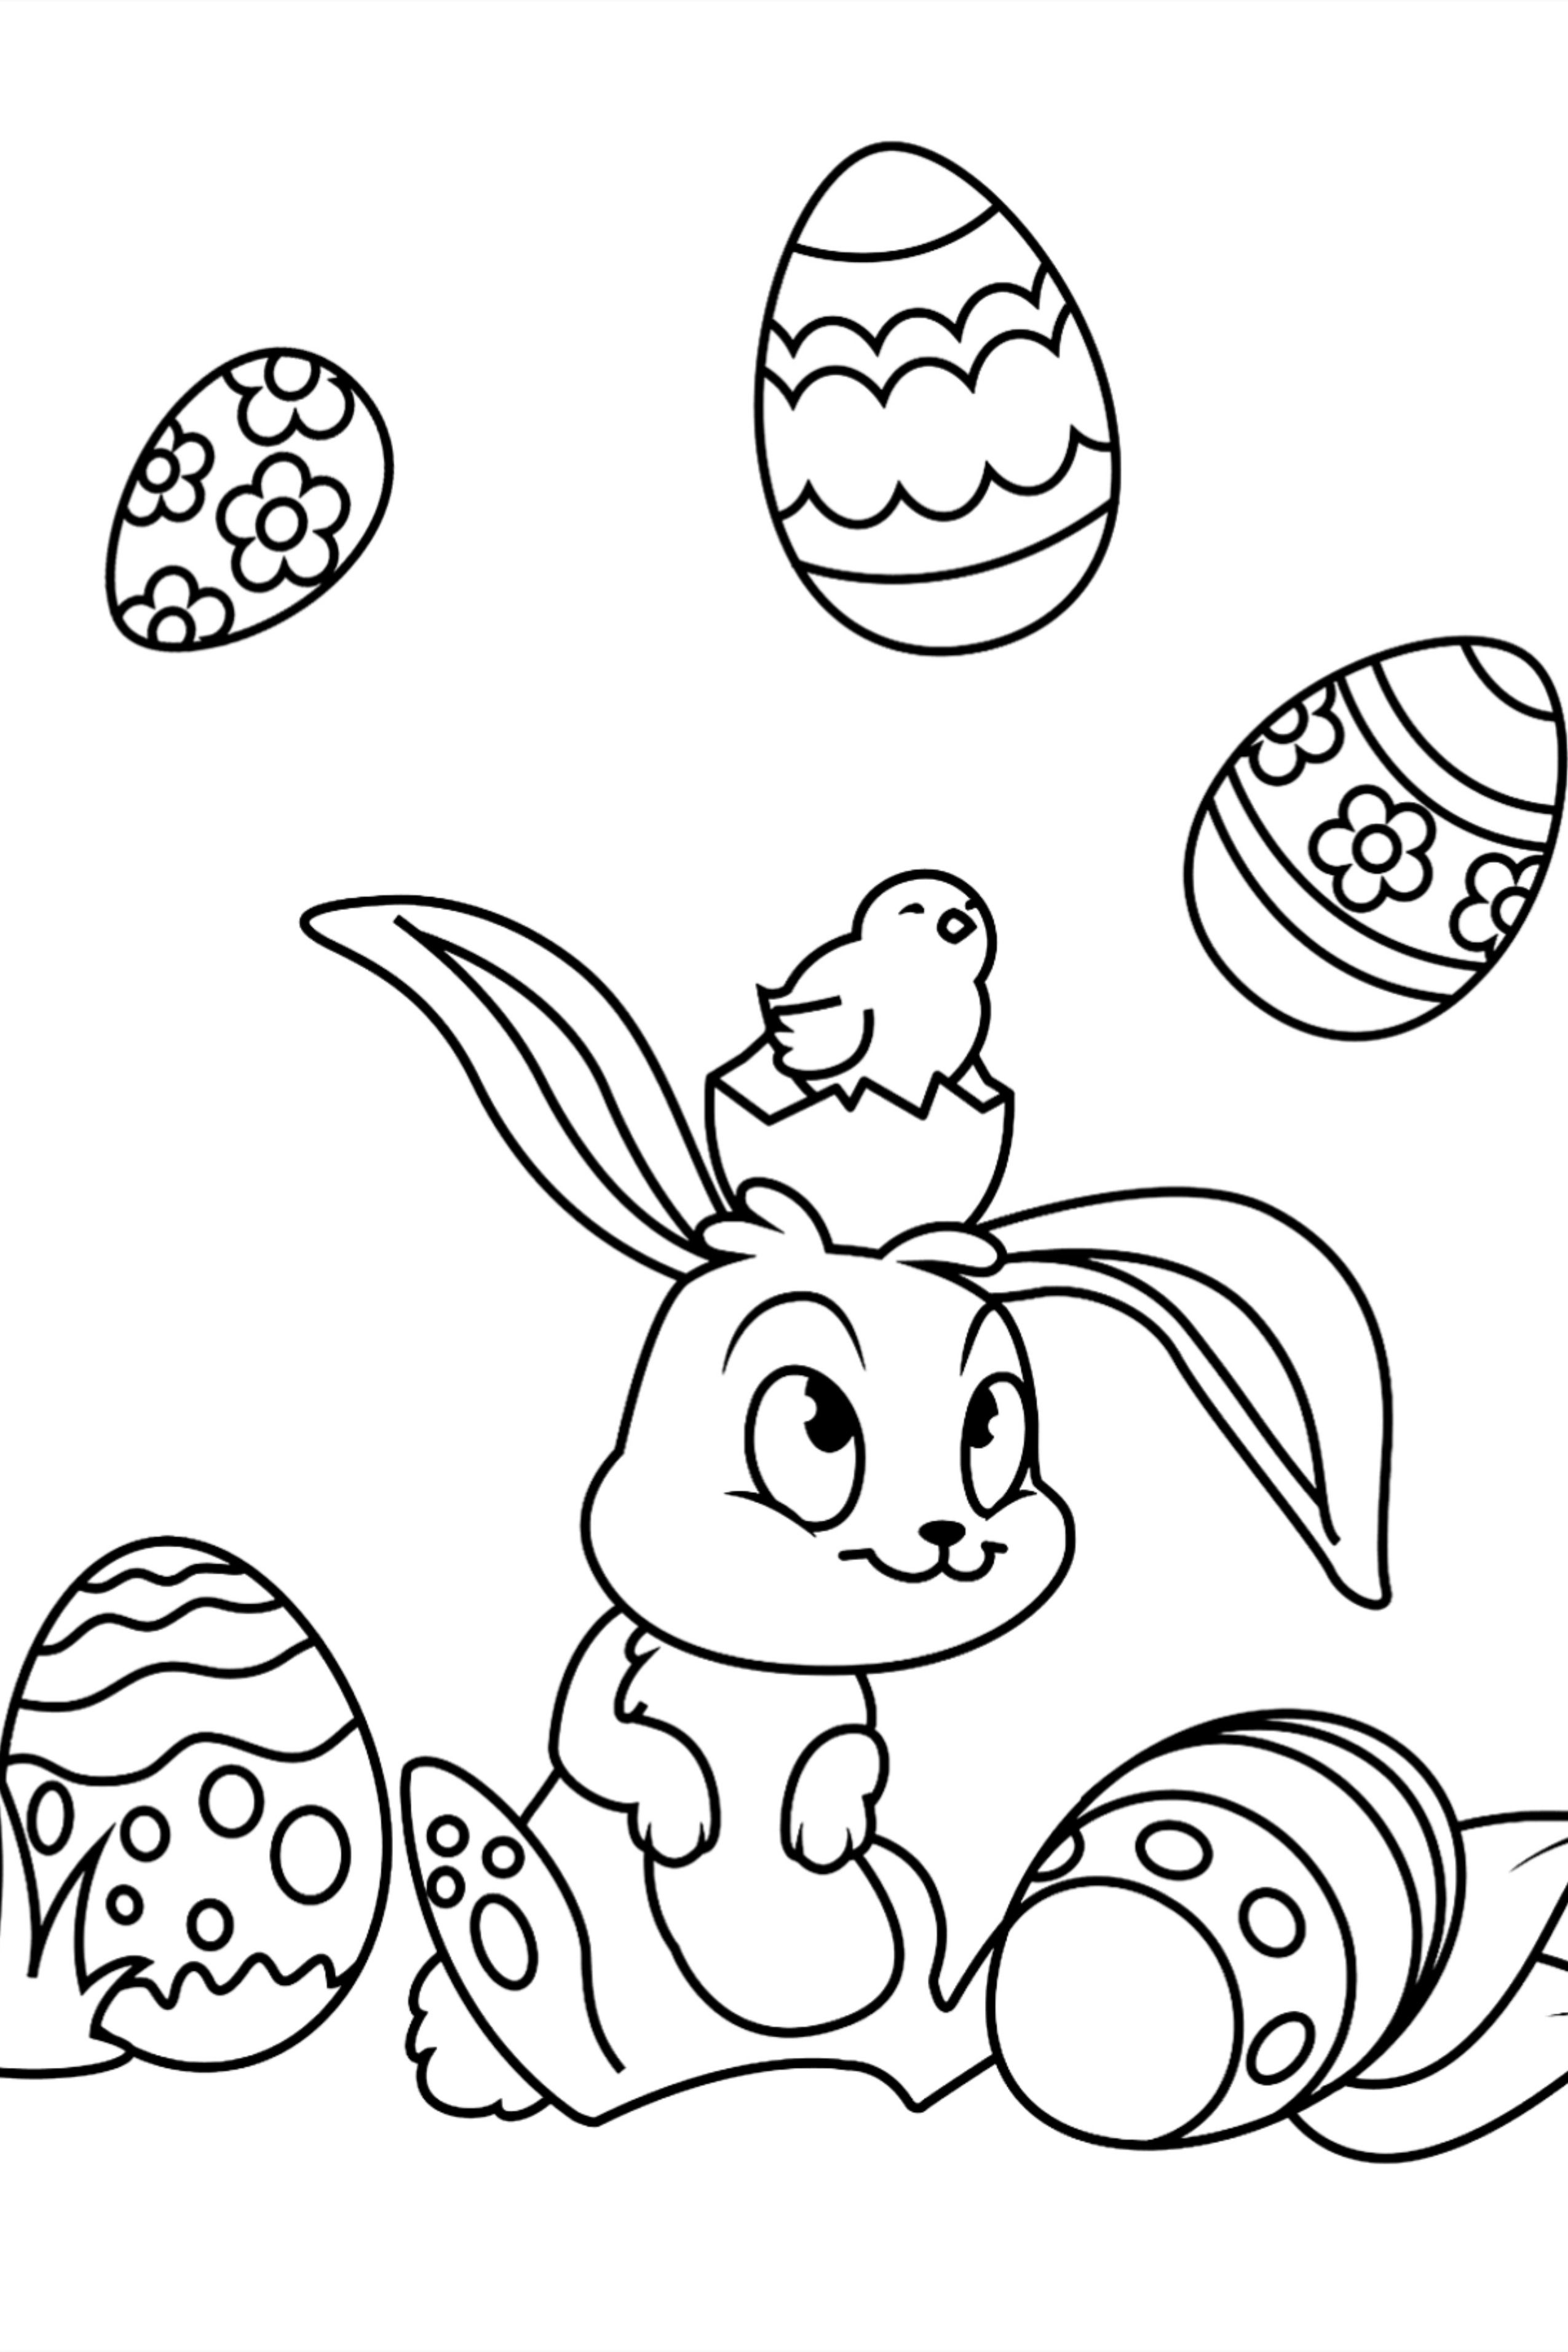 50 Easter Coloring Pages For Kids Easter Coloring Pages Coloring Pages For Kids Coloring Pages